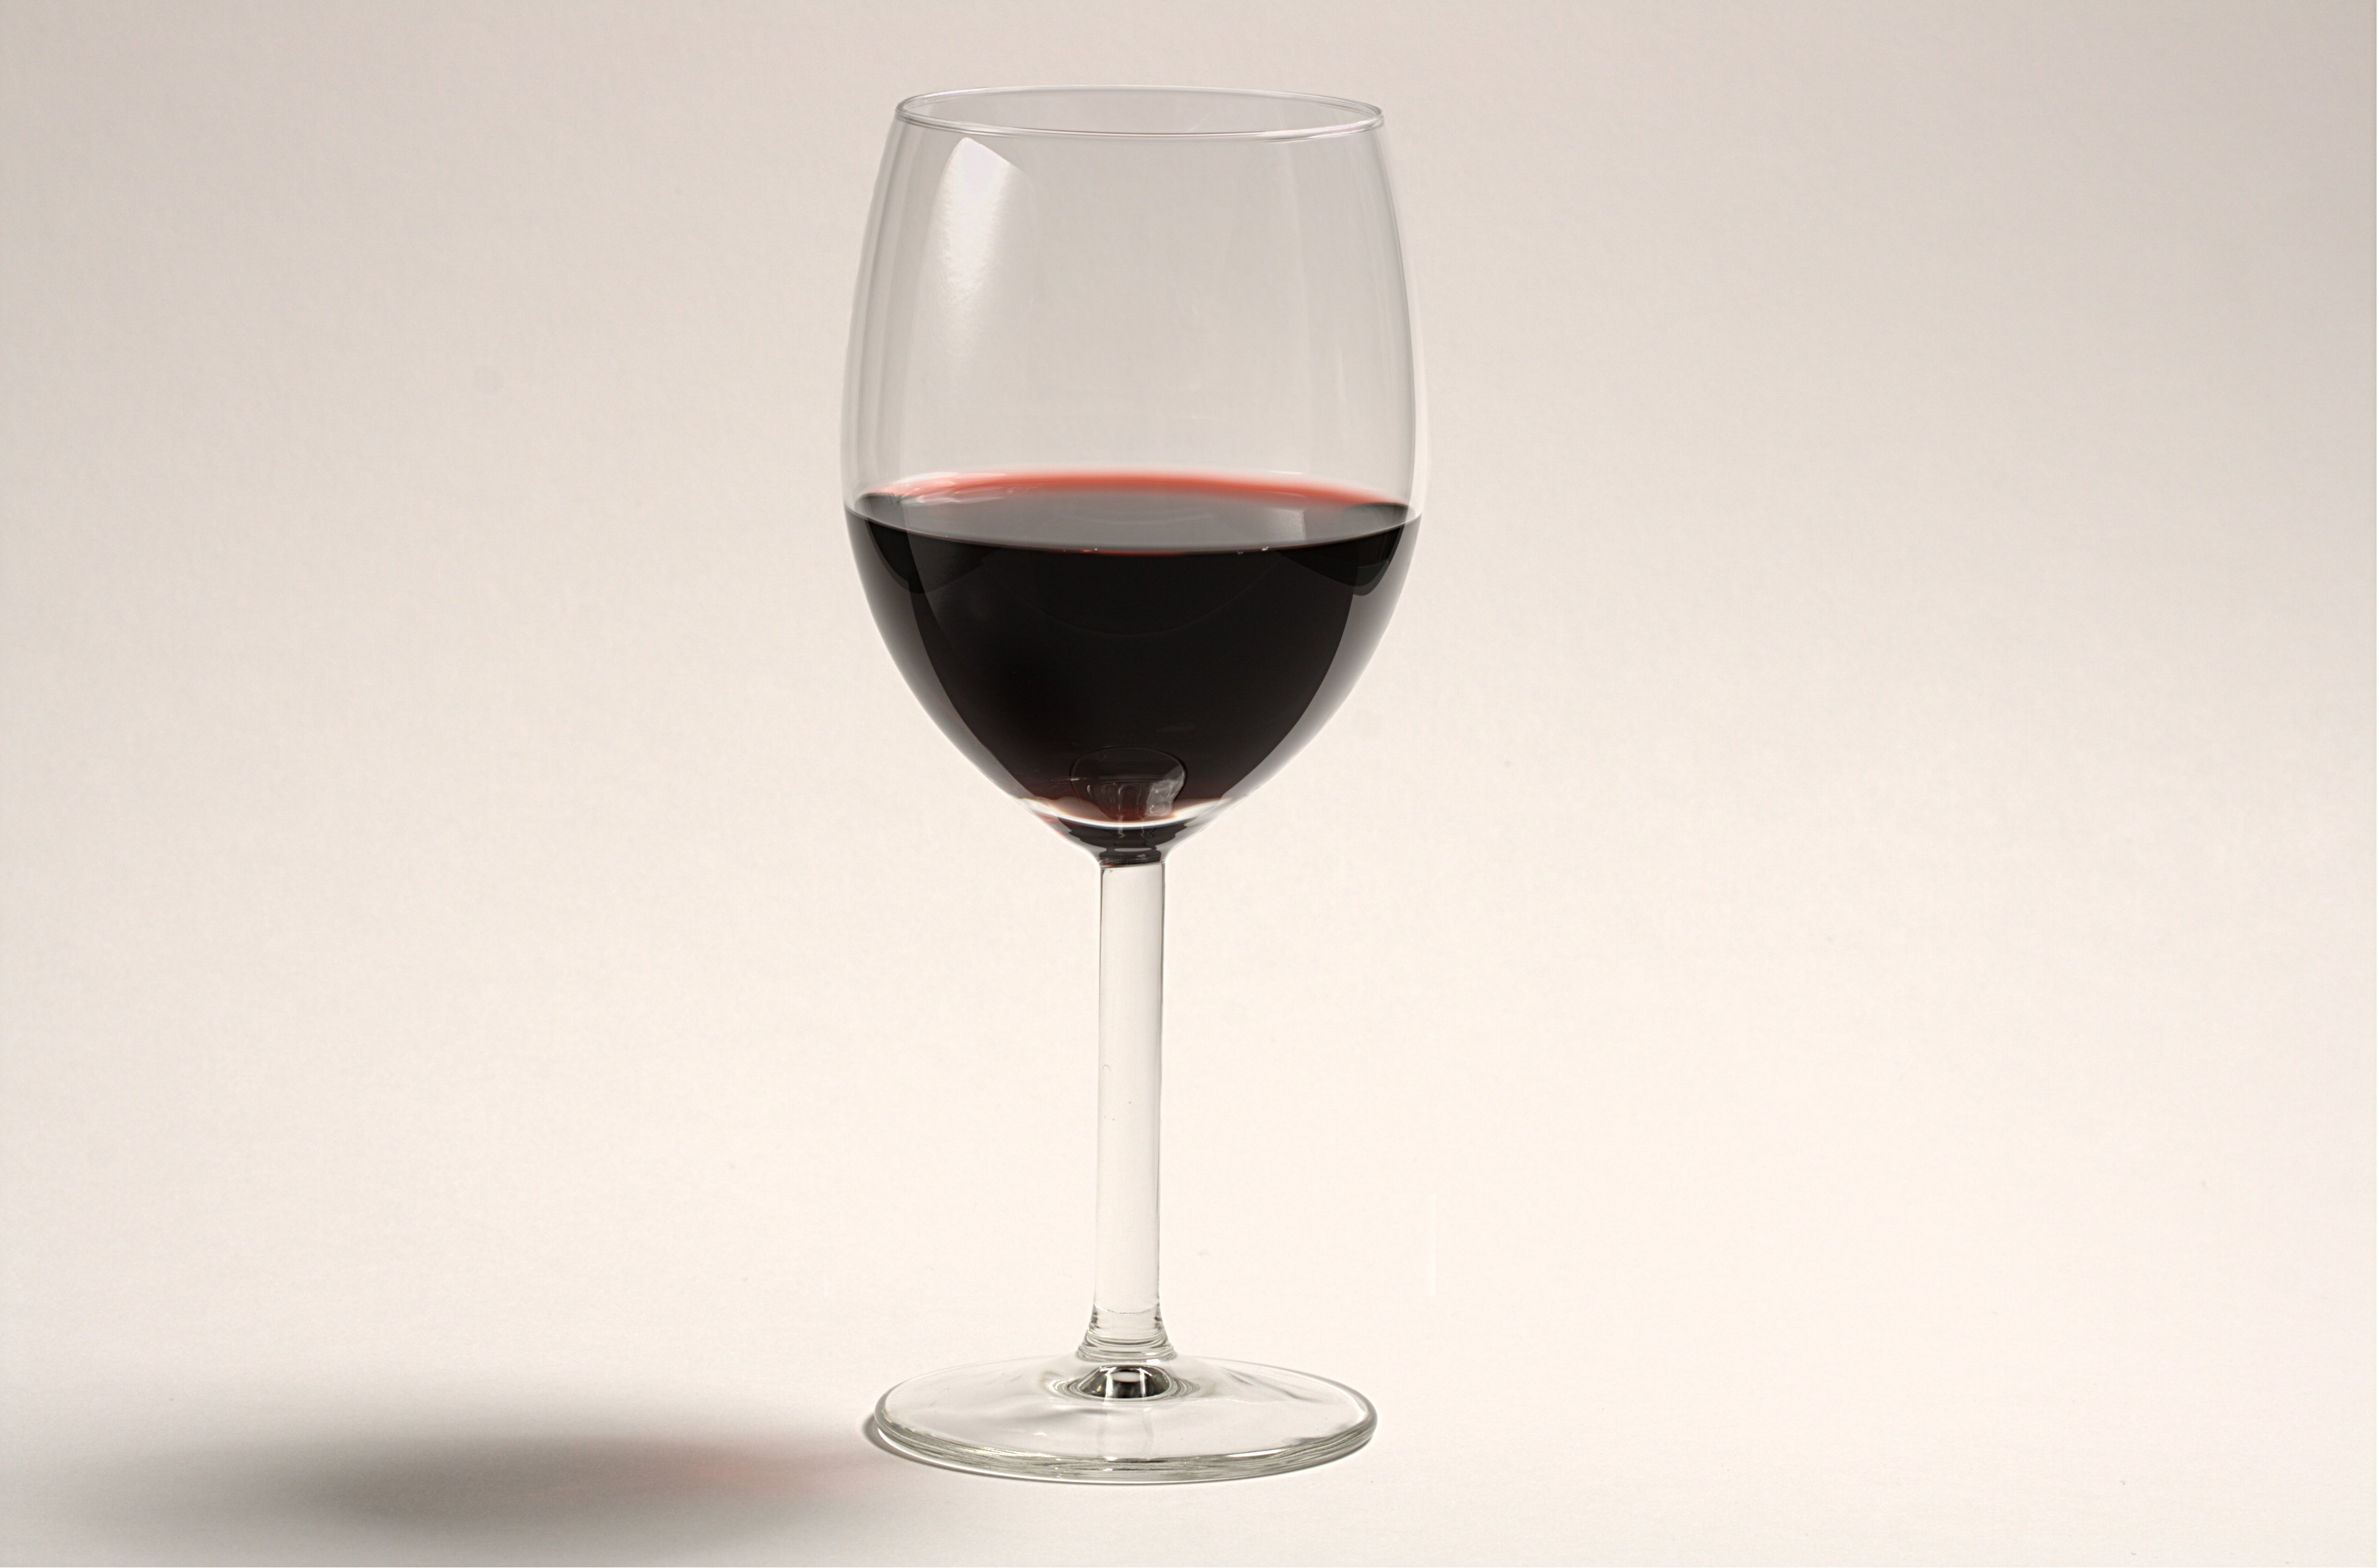 File:A glass of red wine.jpg